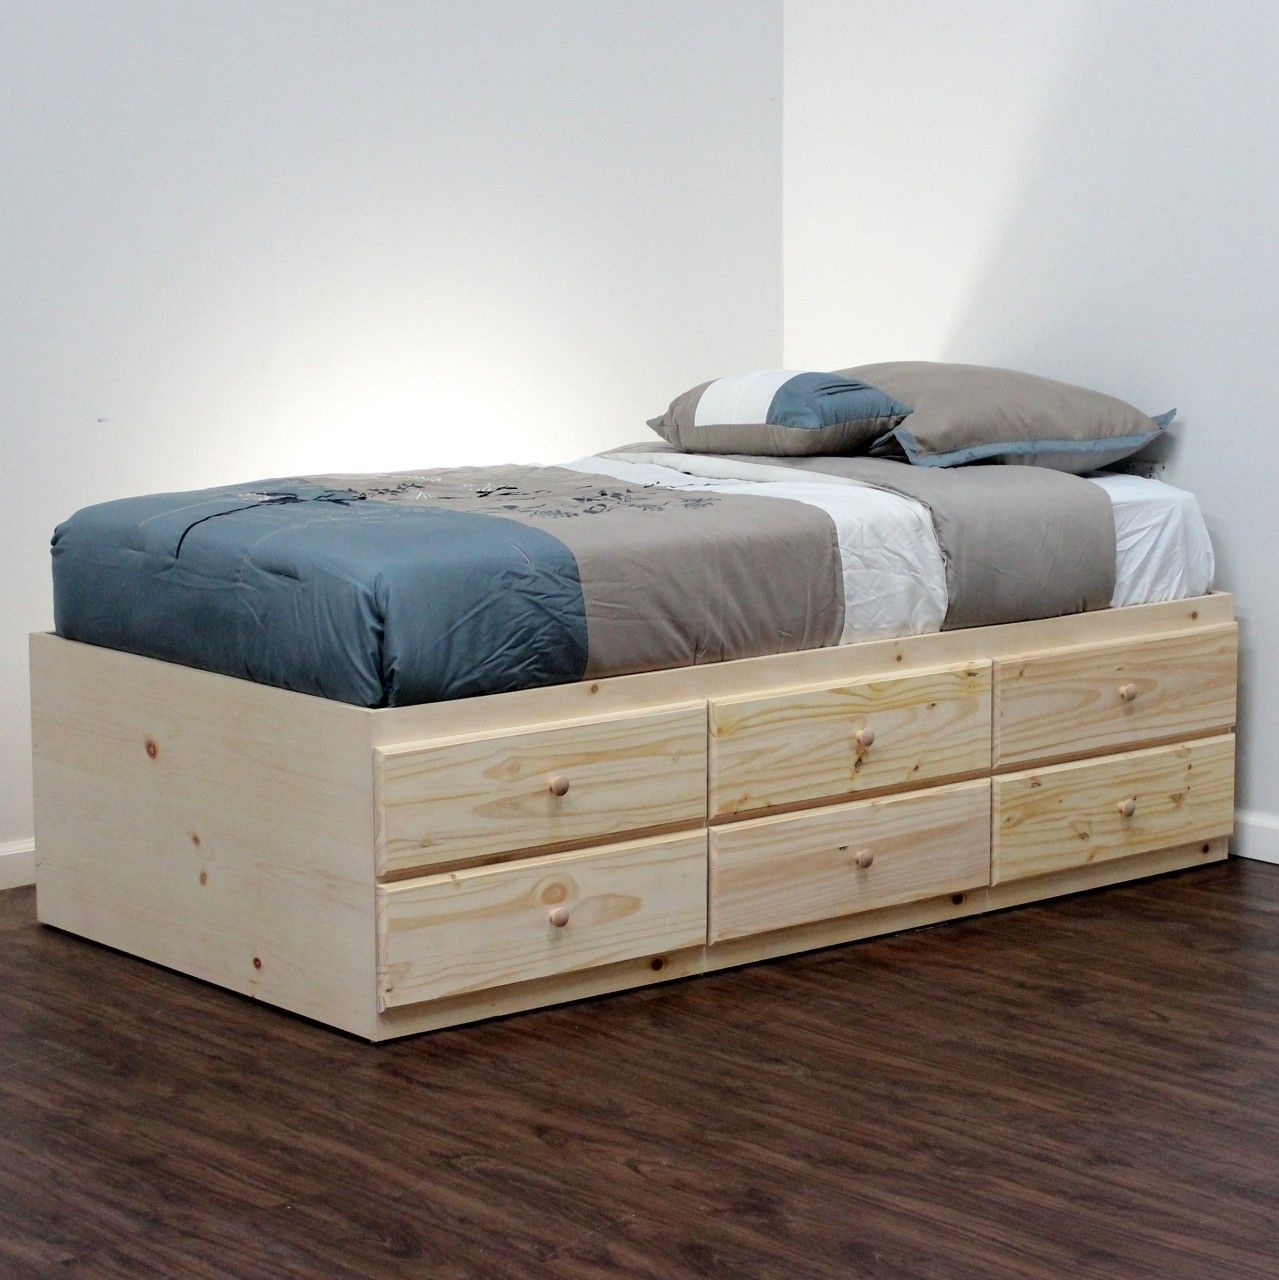 Bed frame design with drawers - Bed Frames